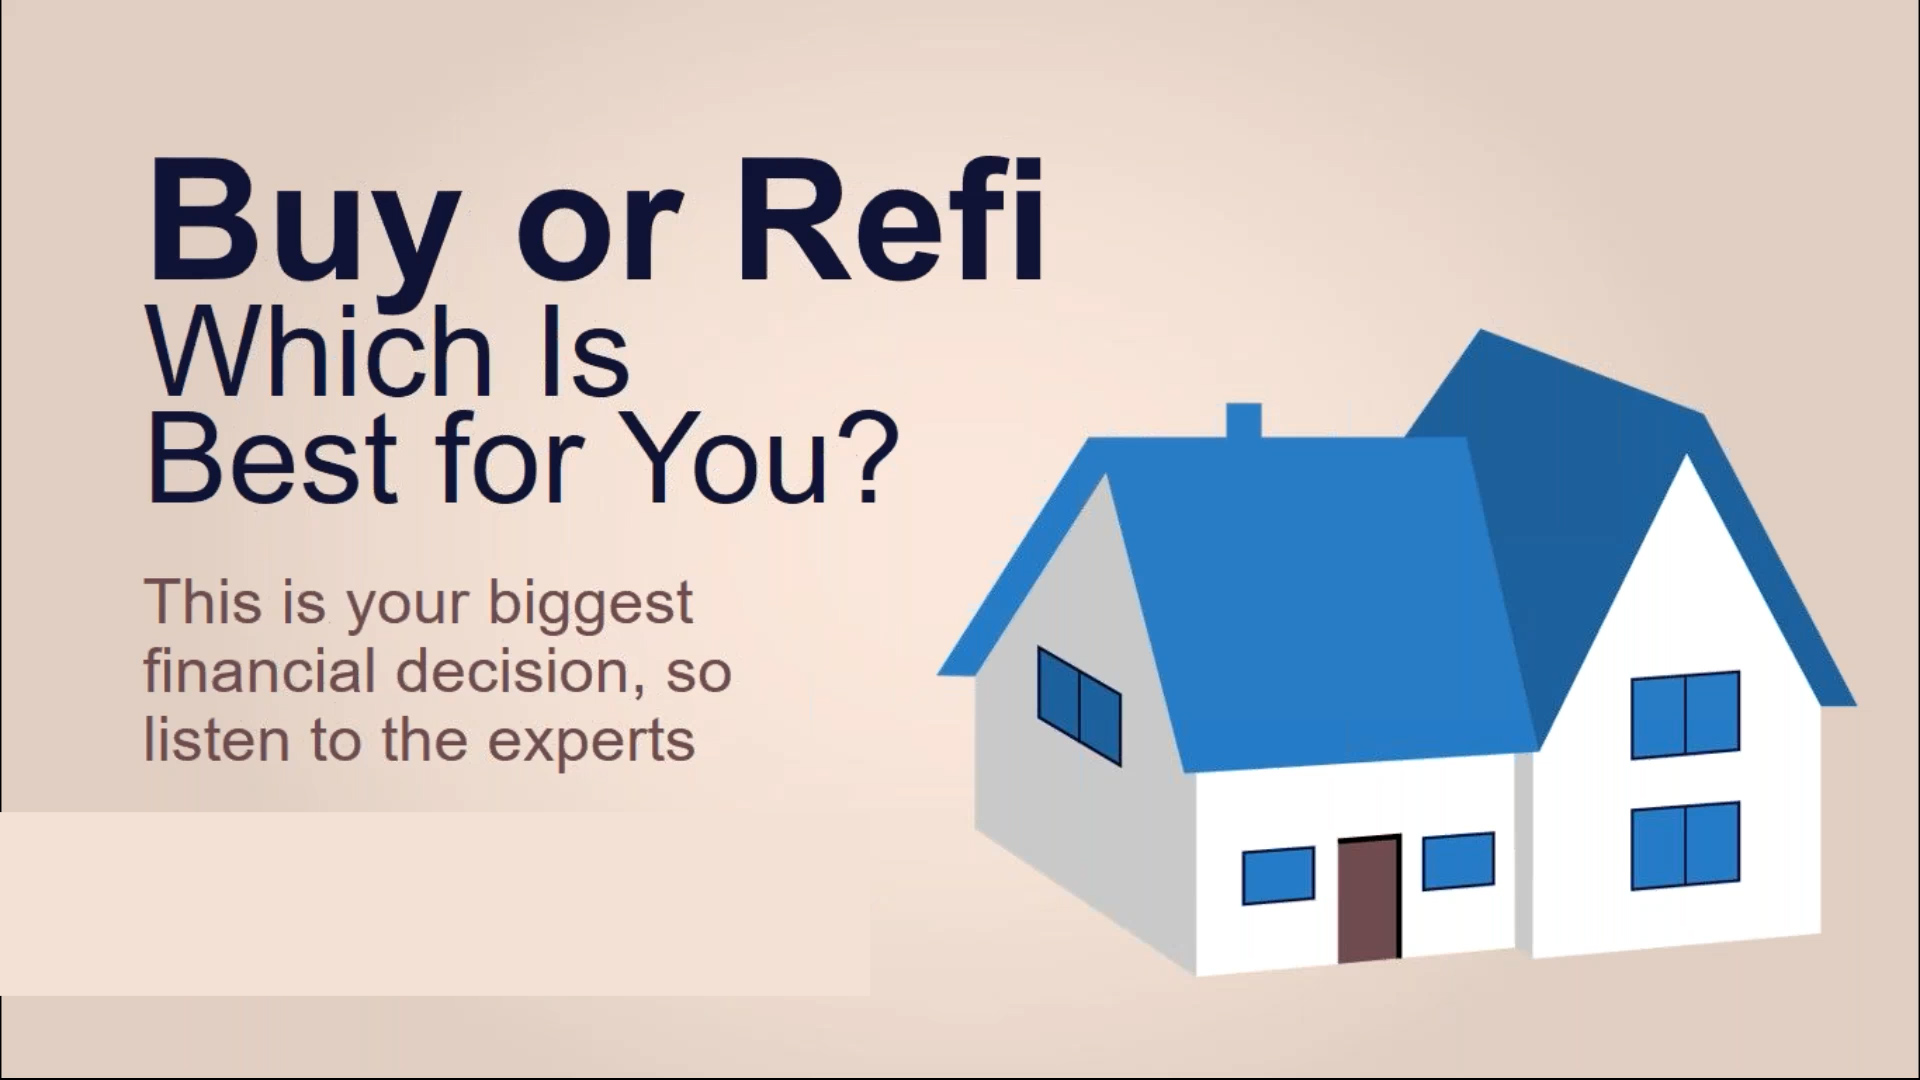 Buy or Refi: Which Is Best for You?